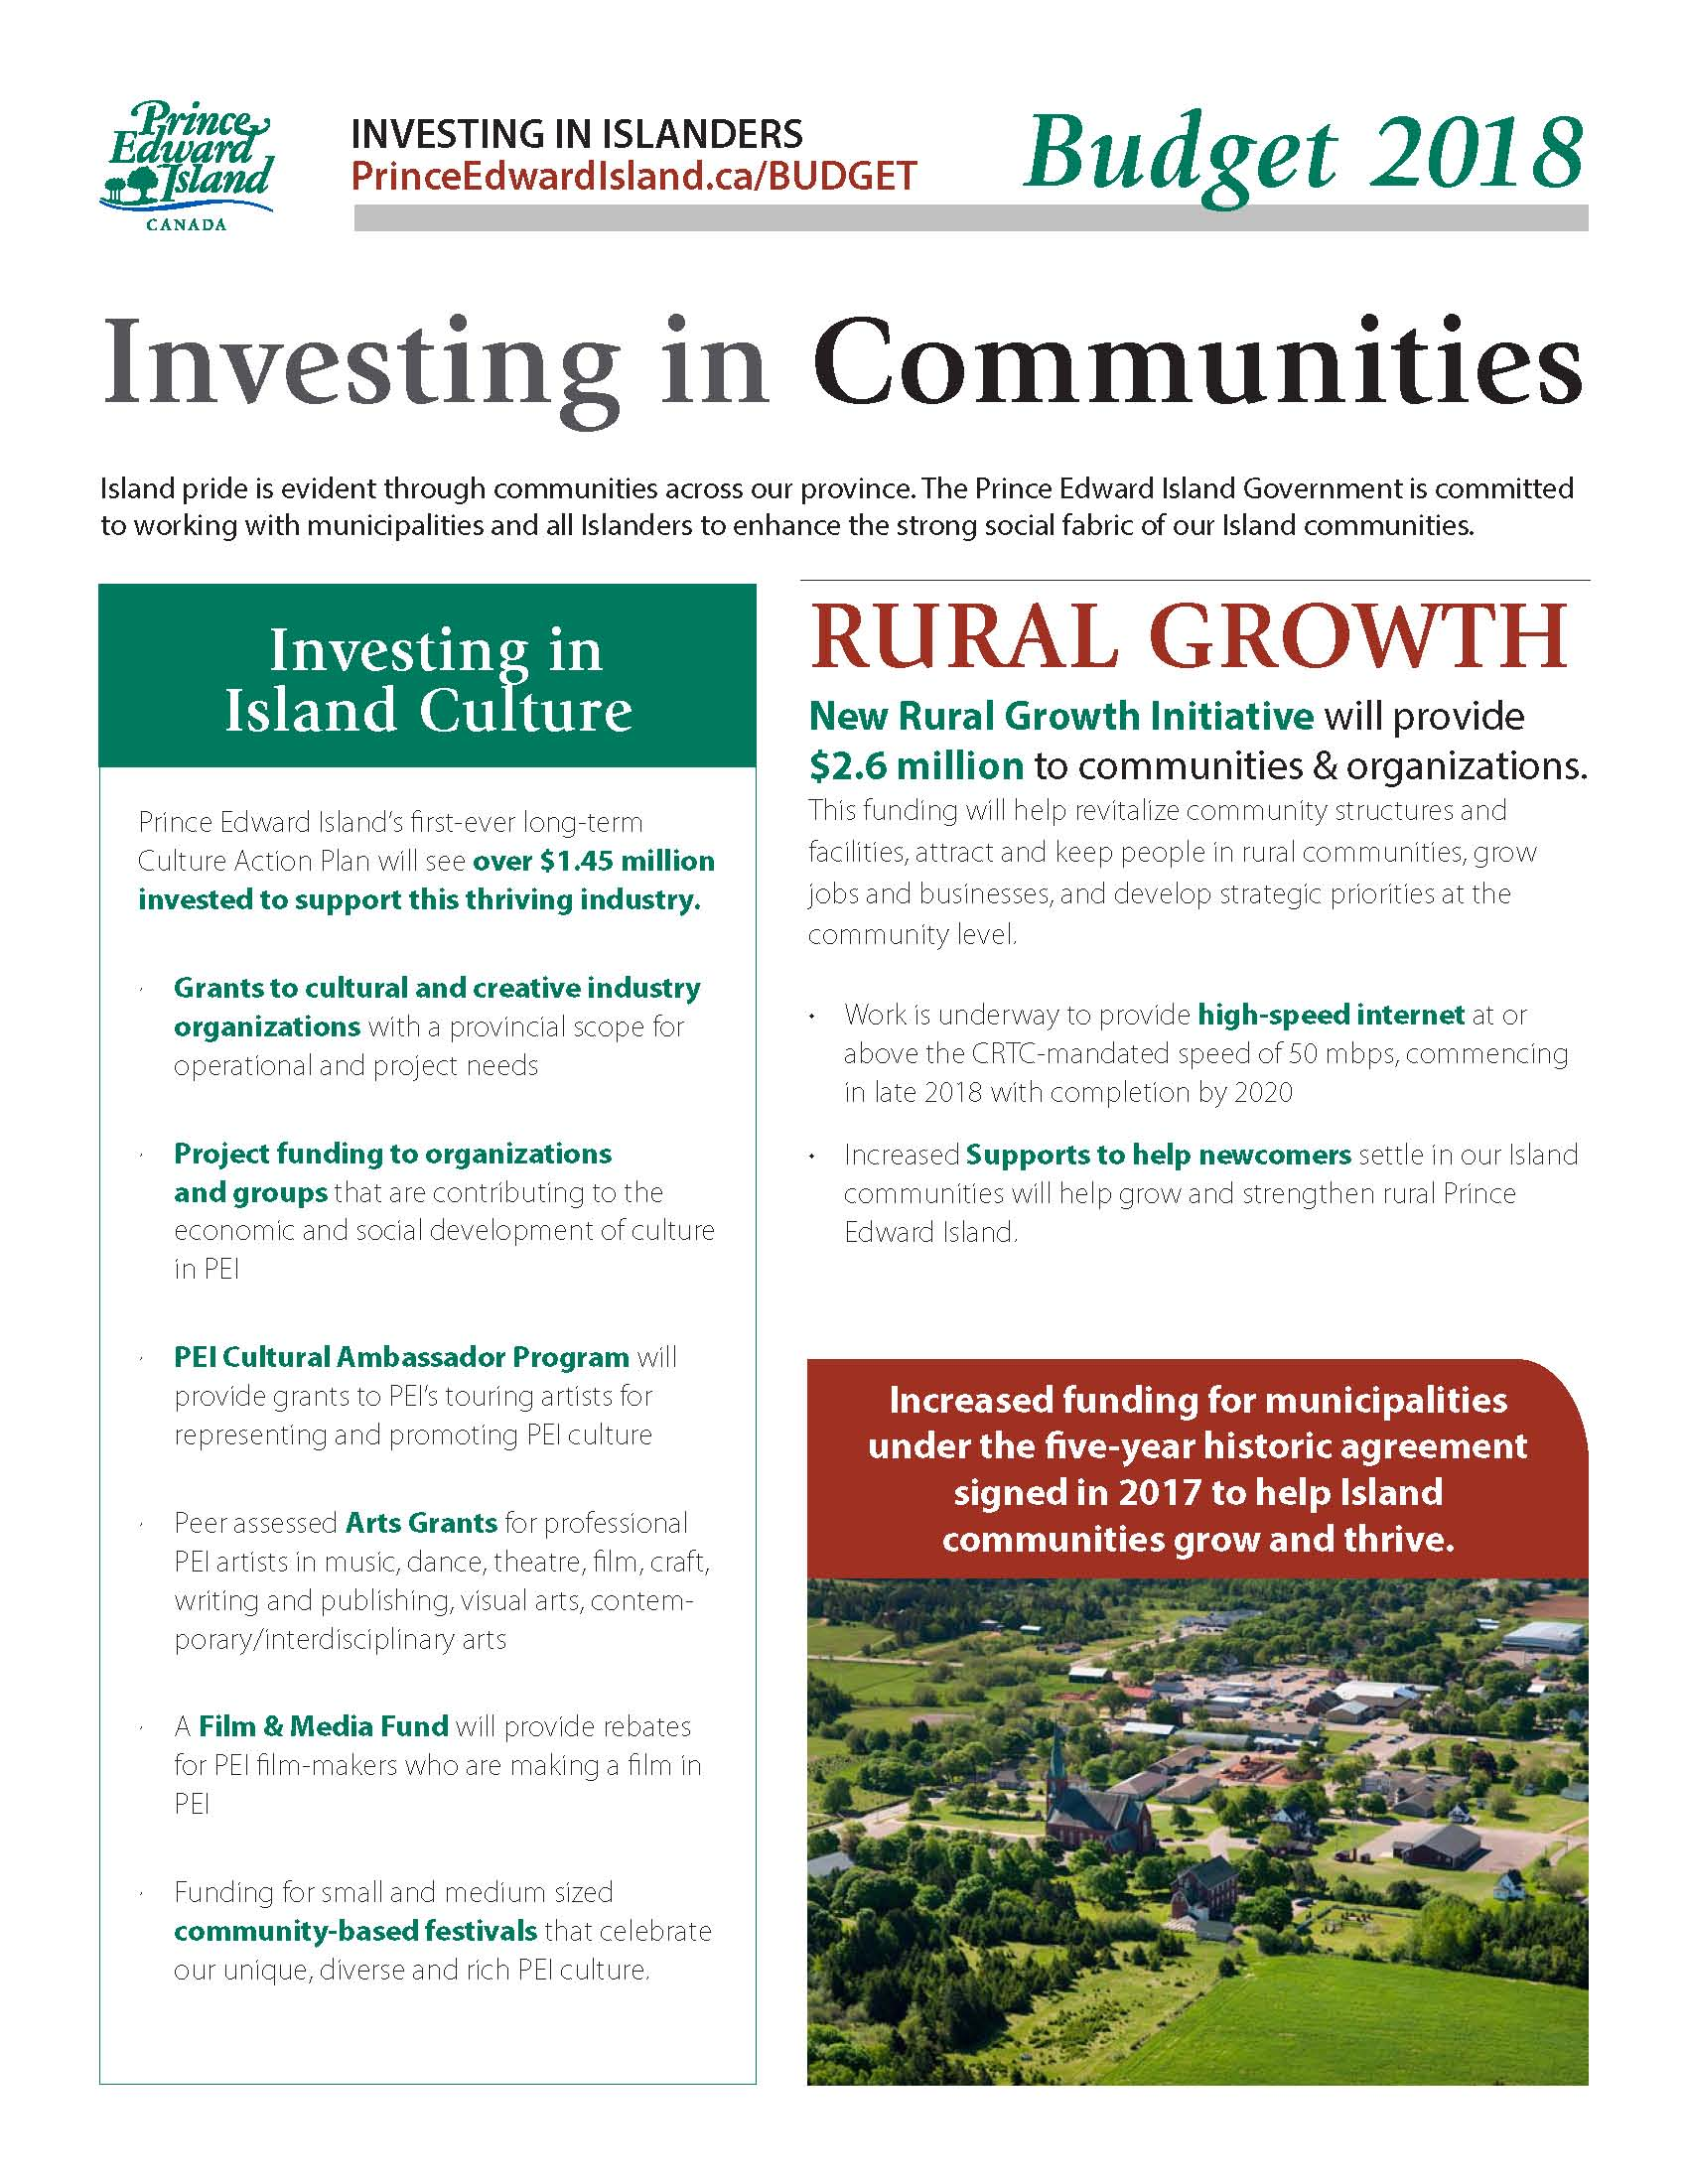 Thumbnail of PEI Budget Community Highlights cover